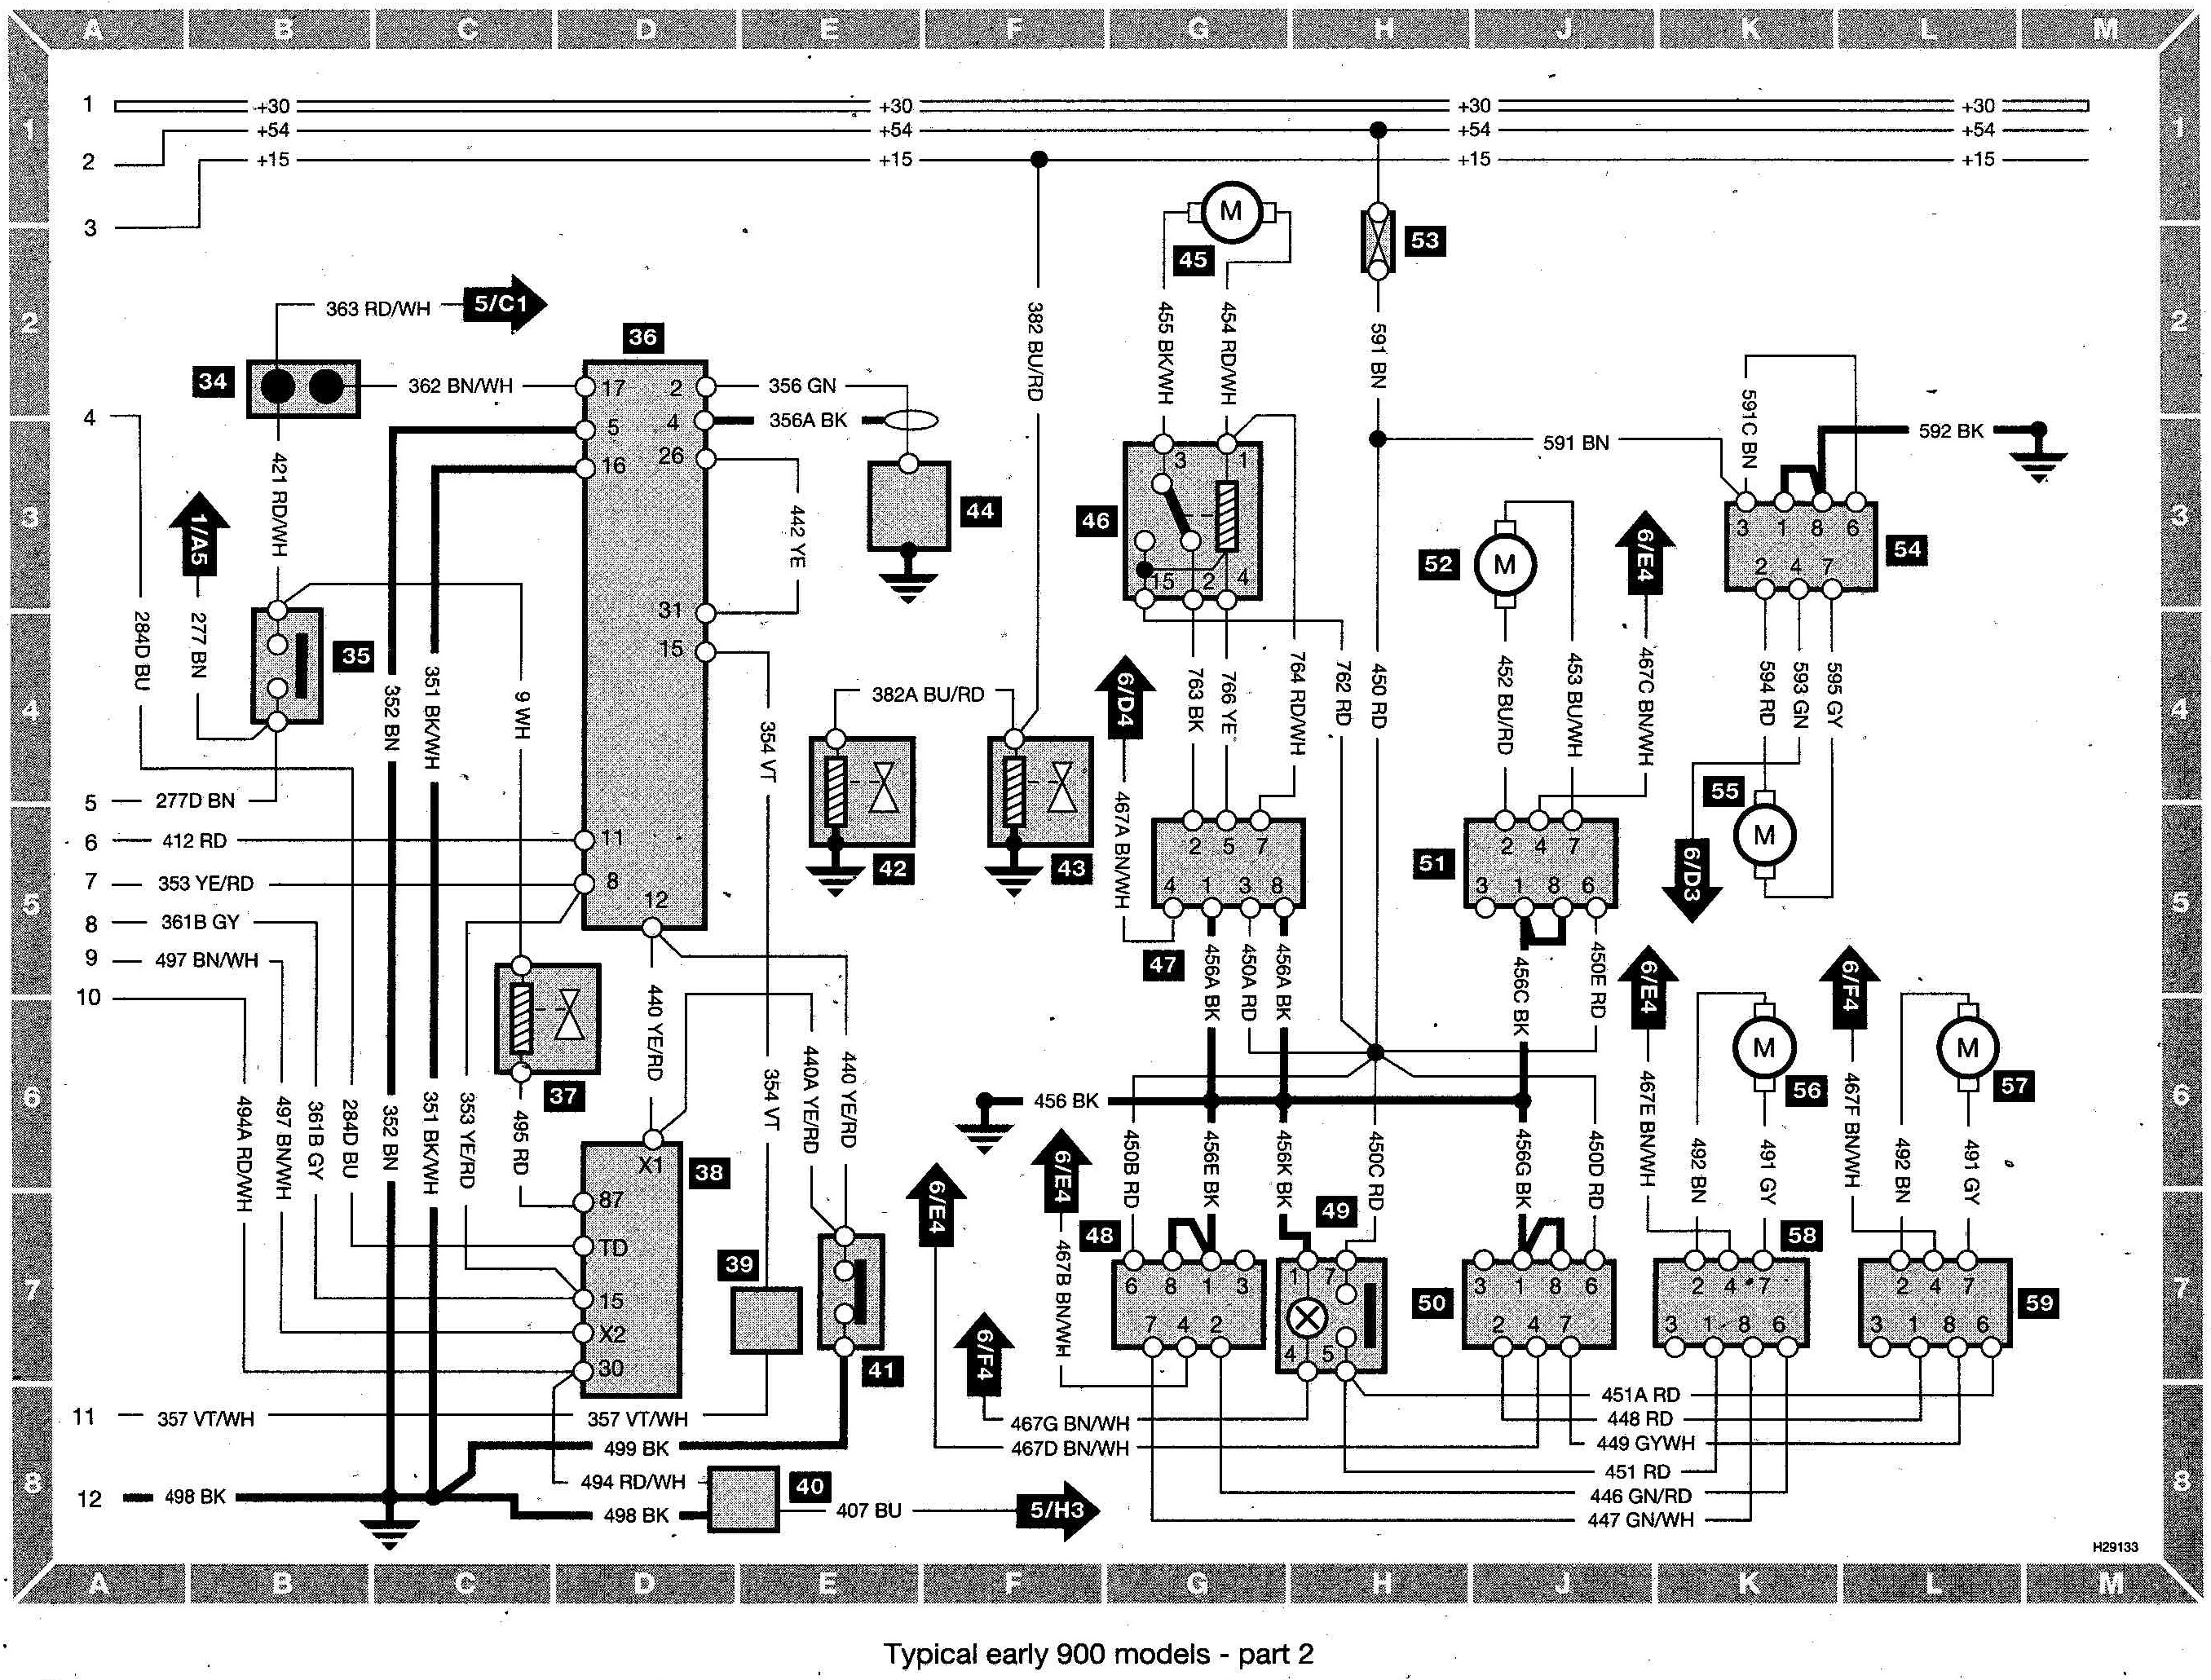 2002 Saab 9 3 Wiring Diagram Wiring Diagrams Schematic 1999 Saab 9 5 Fuse  Box 2002 Saab 9 5 Wiring Diagrams